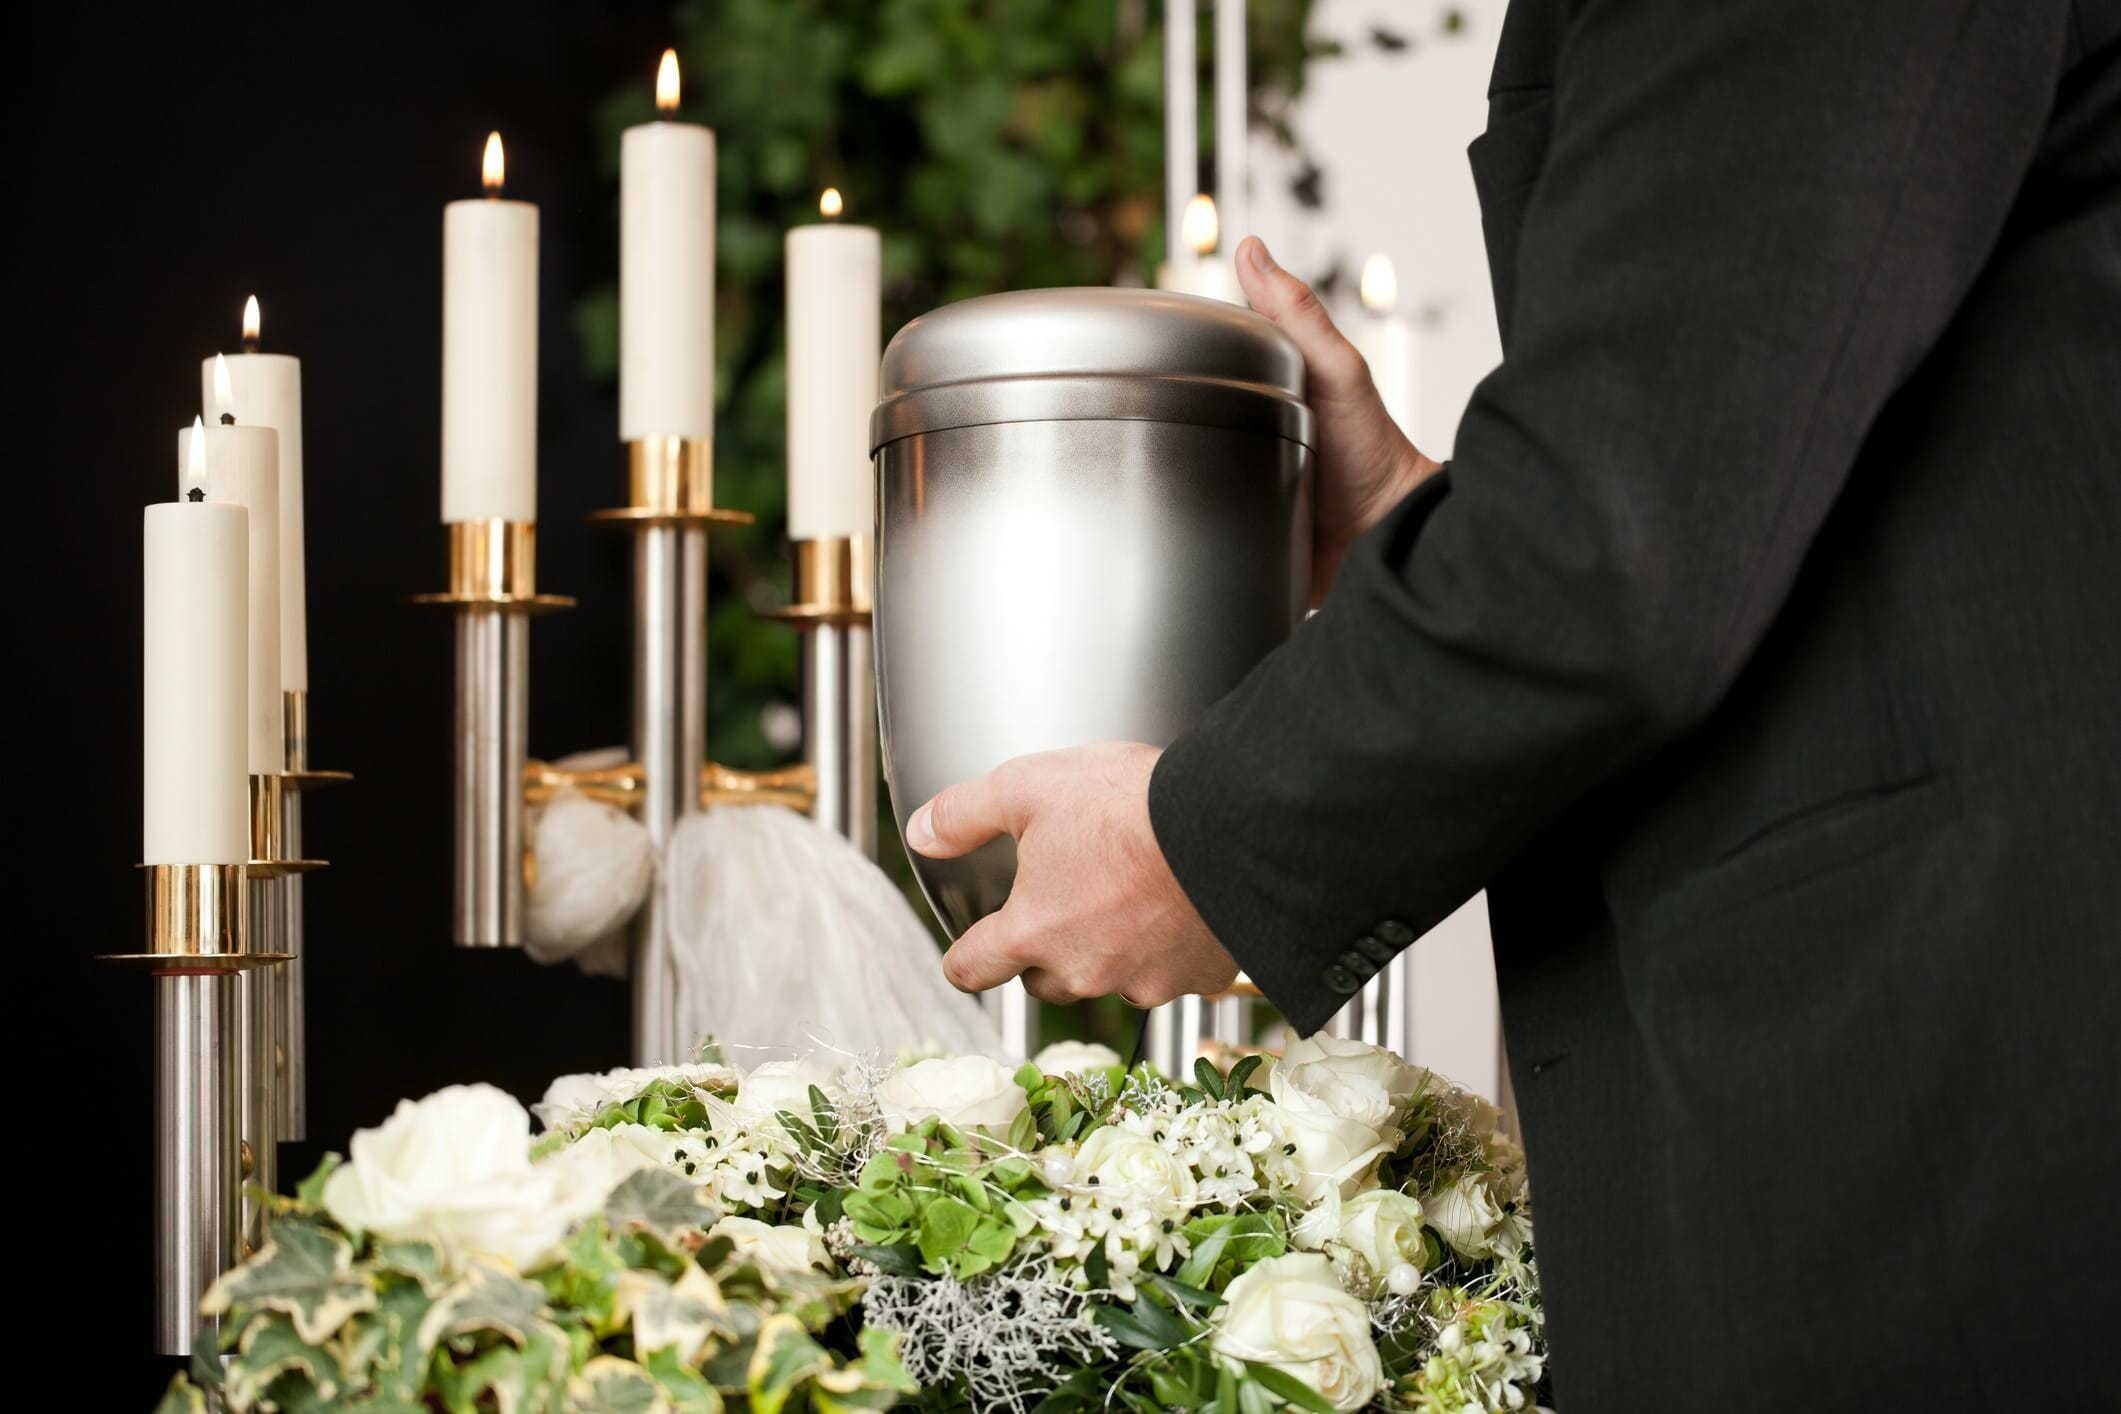 Funeral Service Questions and Answers